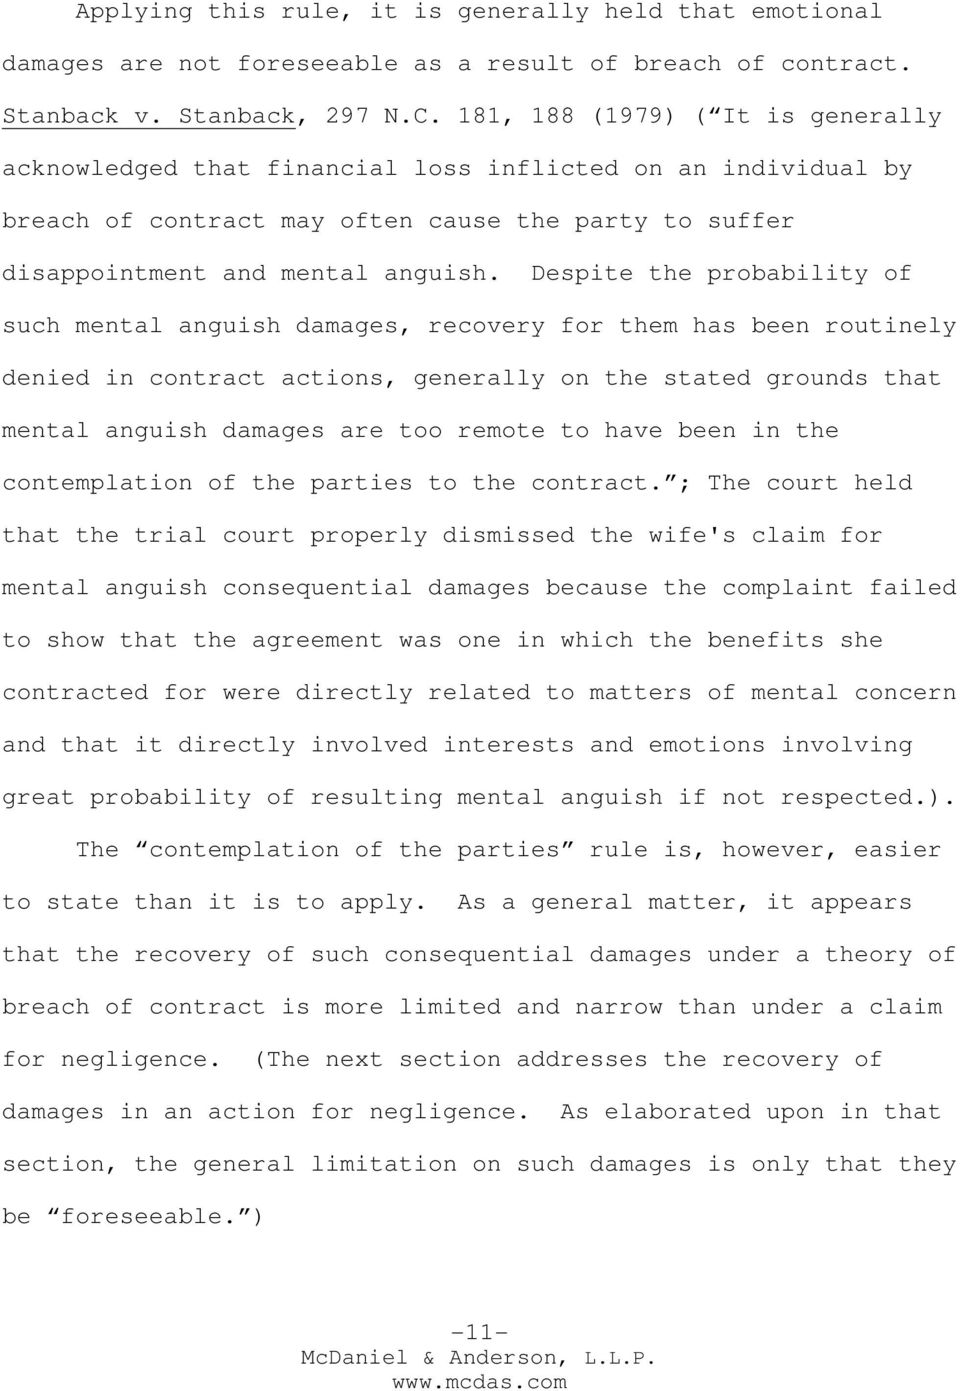 Despite the probability of such mental anguish damages, recovery for them has been routinely denied in contract actions, generally on the stated grounds that mental anguish damages are too remote to